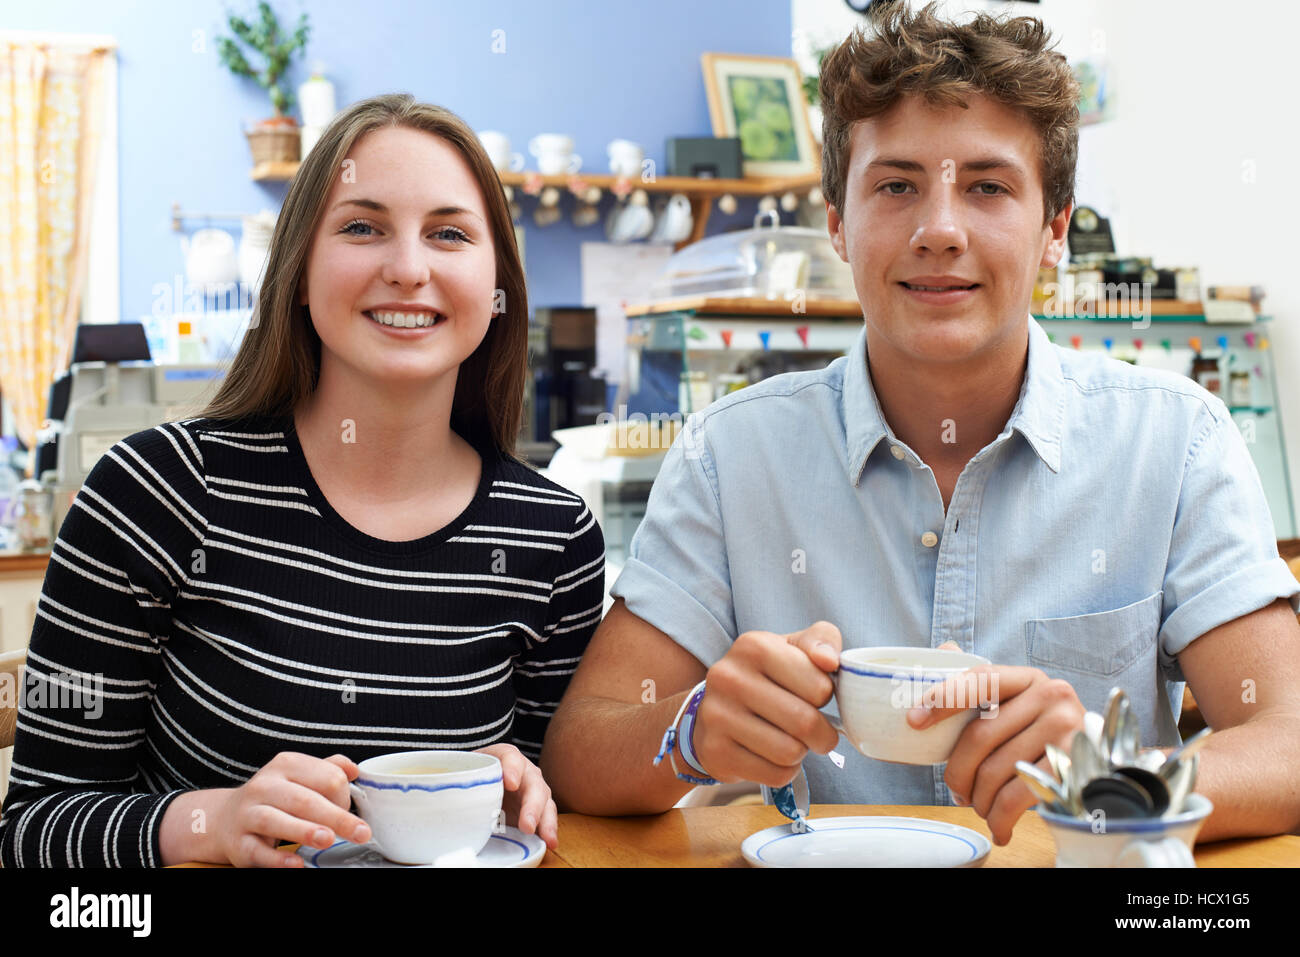 Group Of Portrait Of Teenage Couple Meeting In Cafe - Stock Image